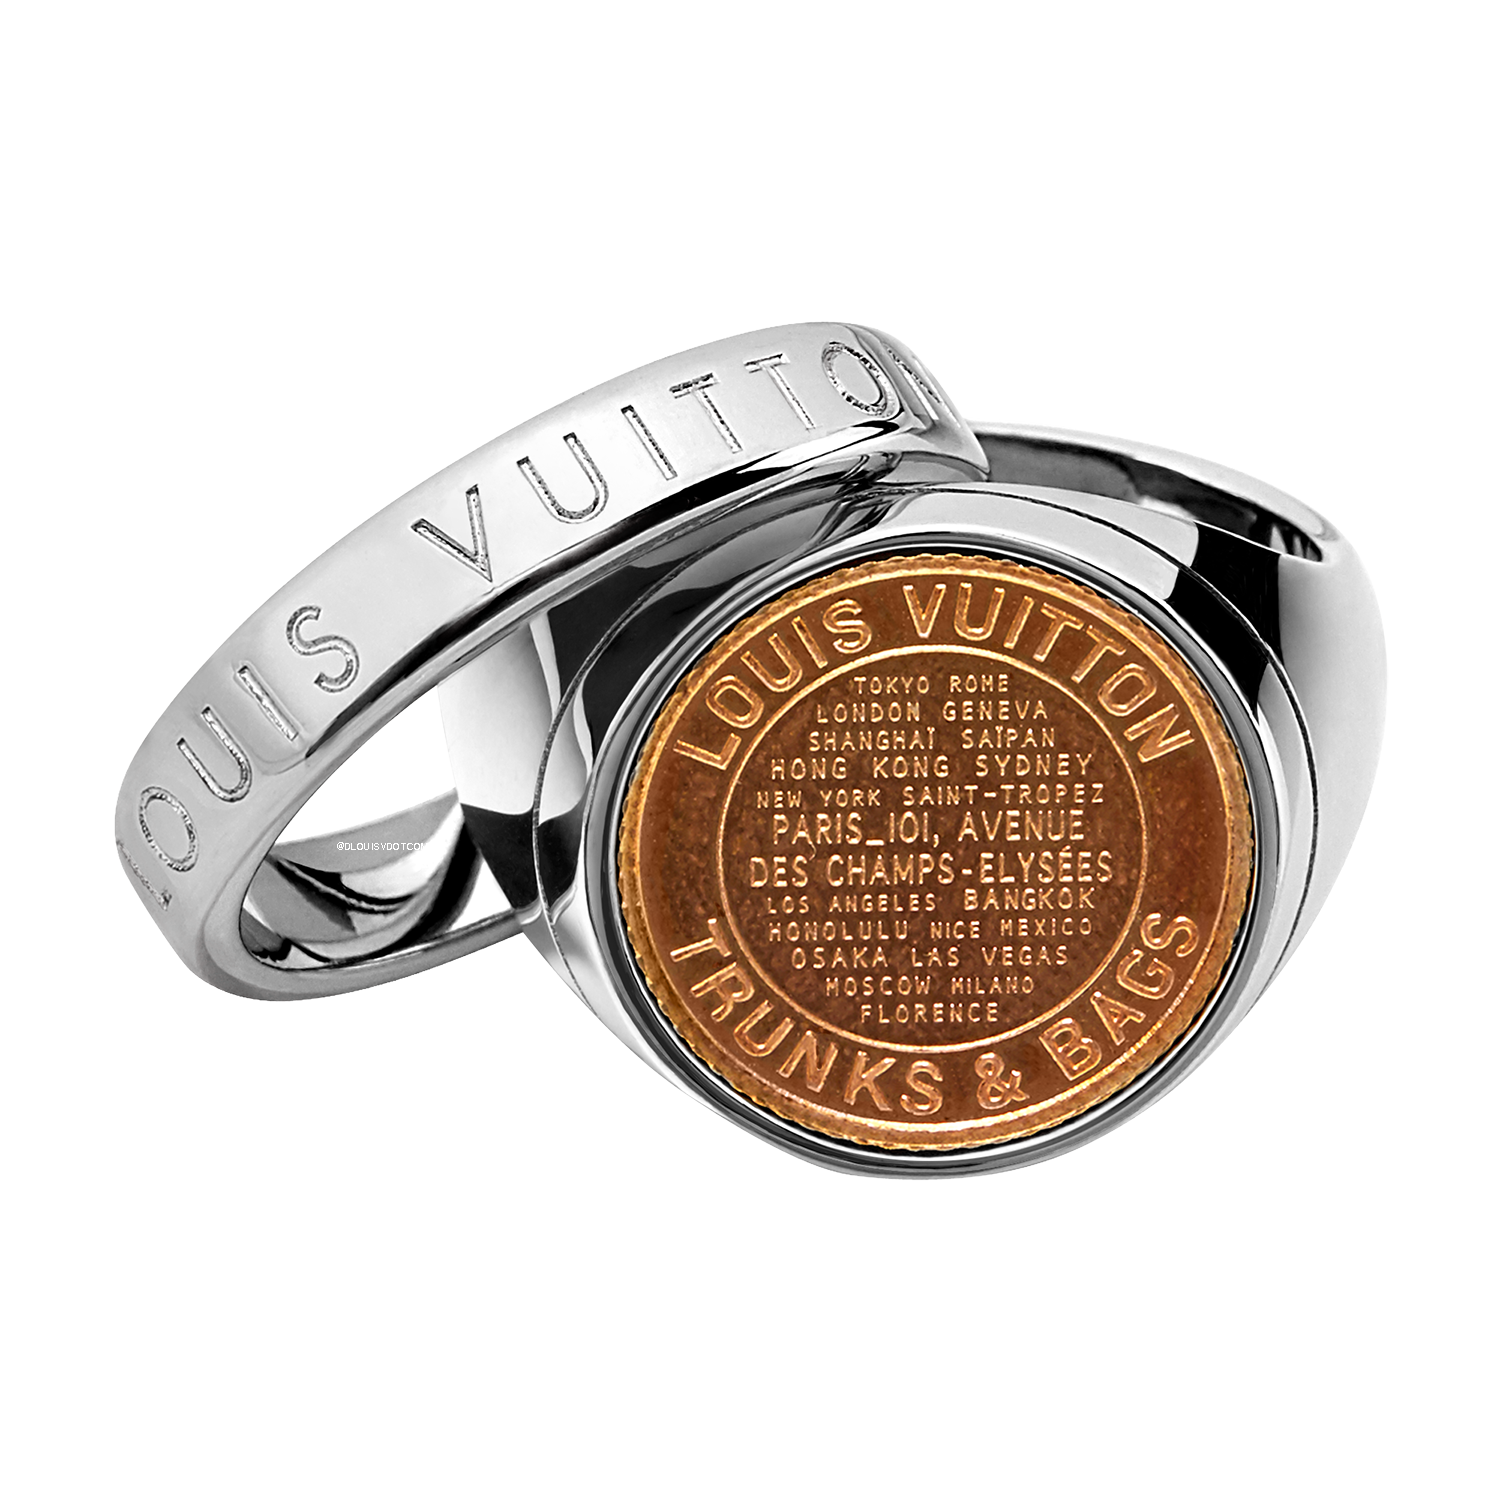 LV AMERICANA COIN RING - €350 $515MP2134GRIS